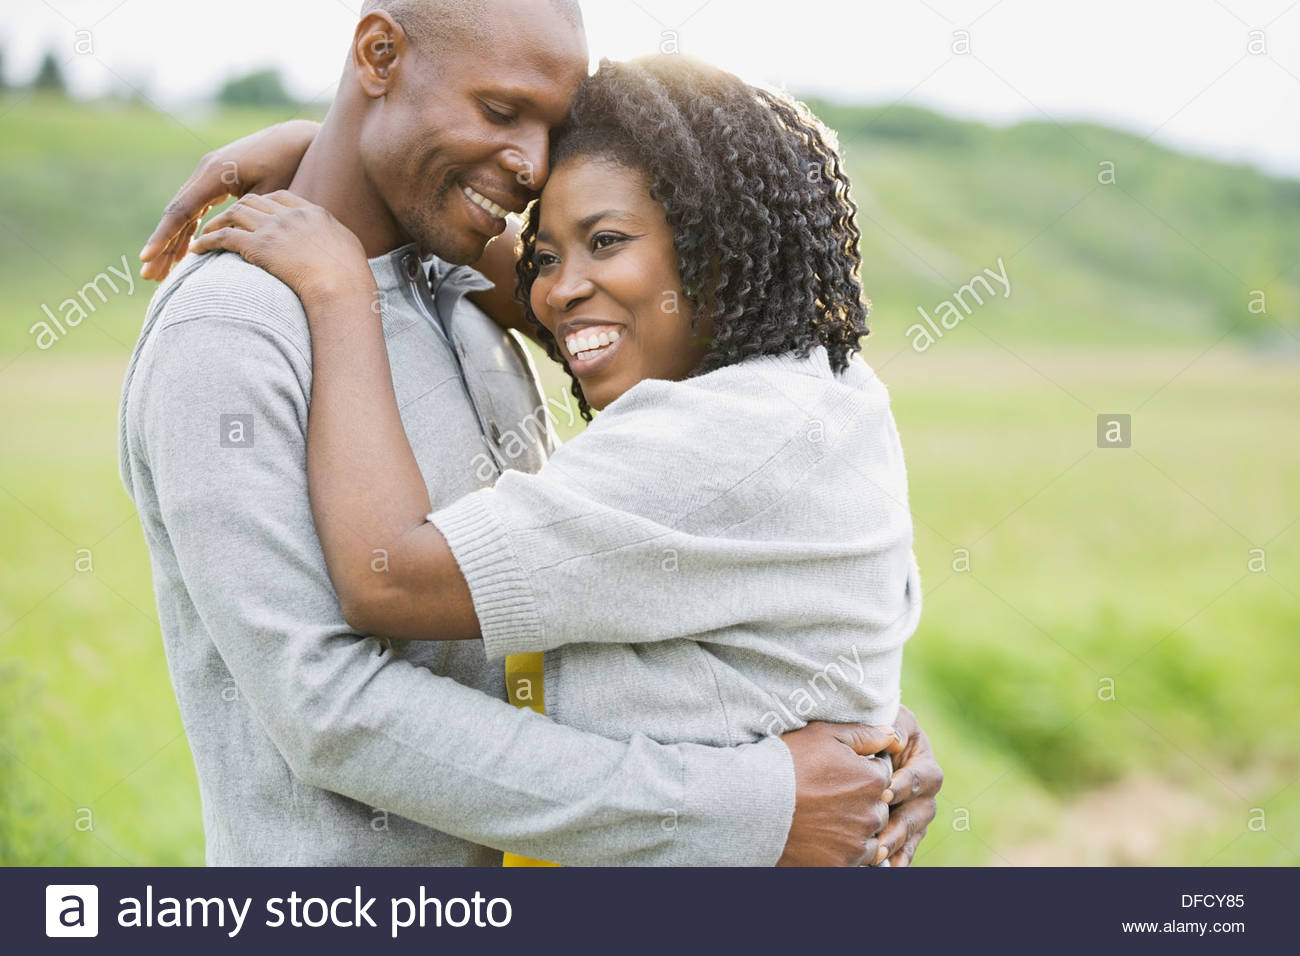 Affectionate couple embracing outdoors Photo Stock